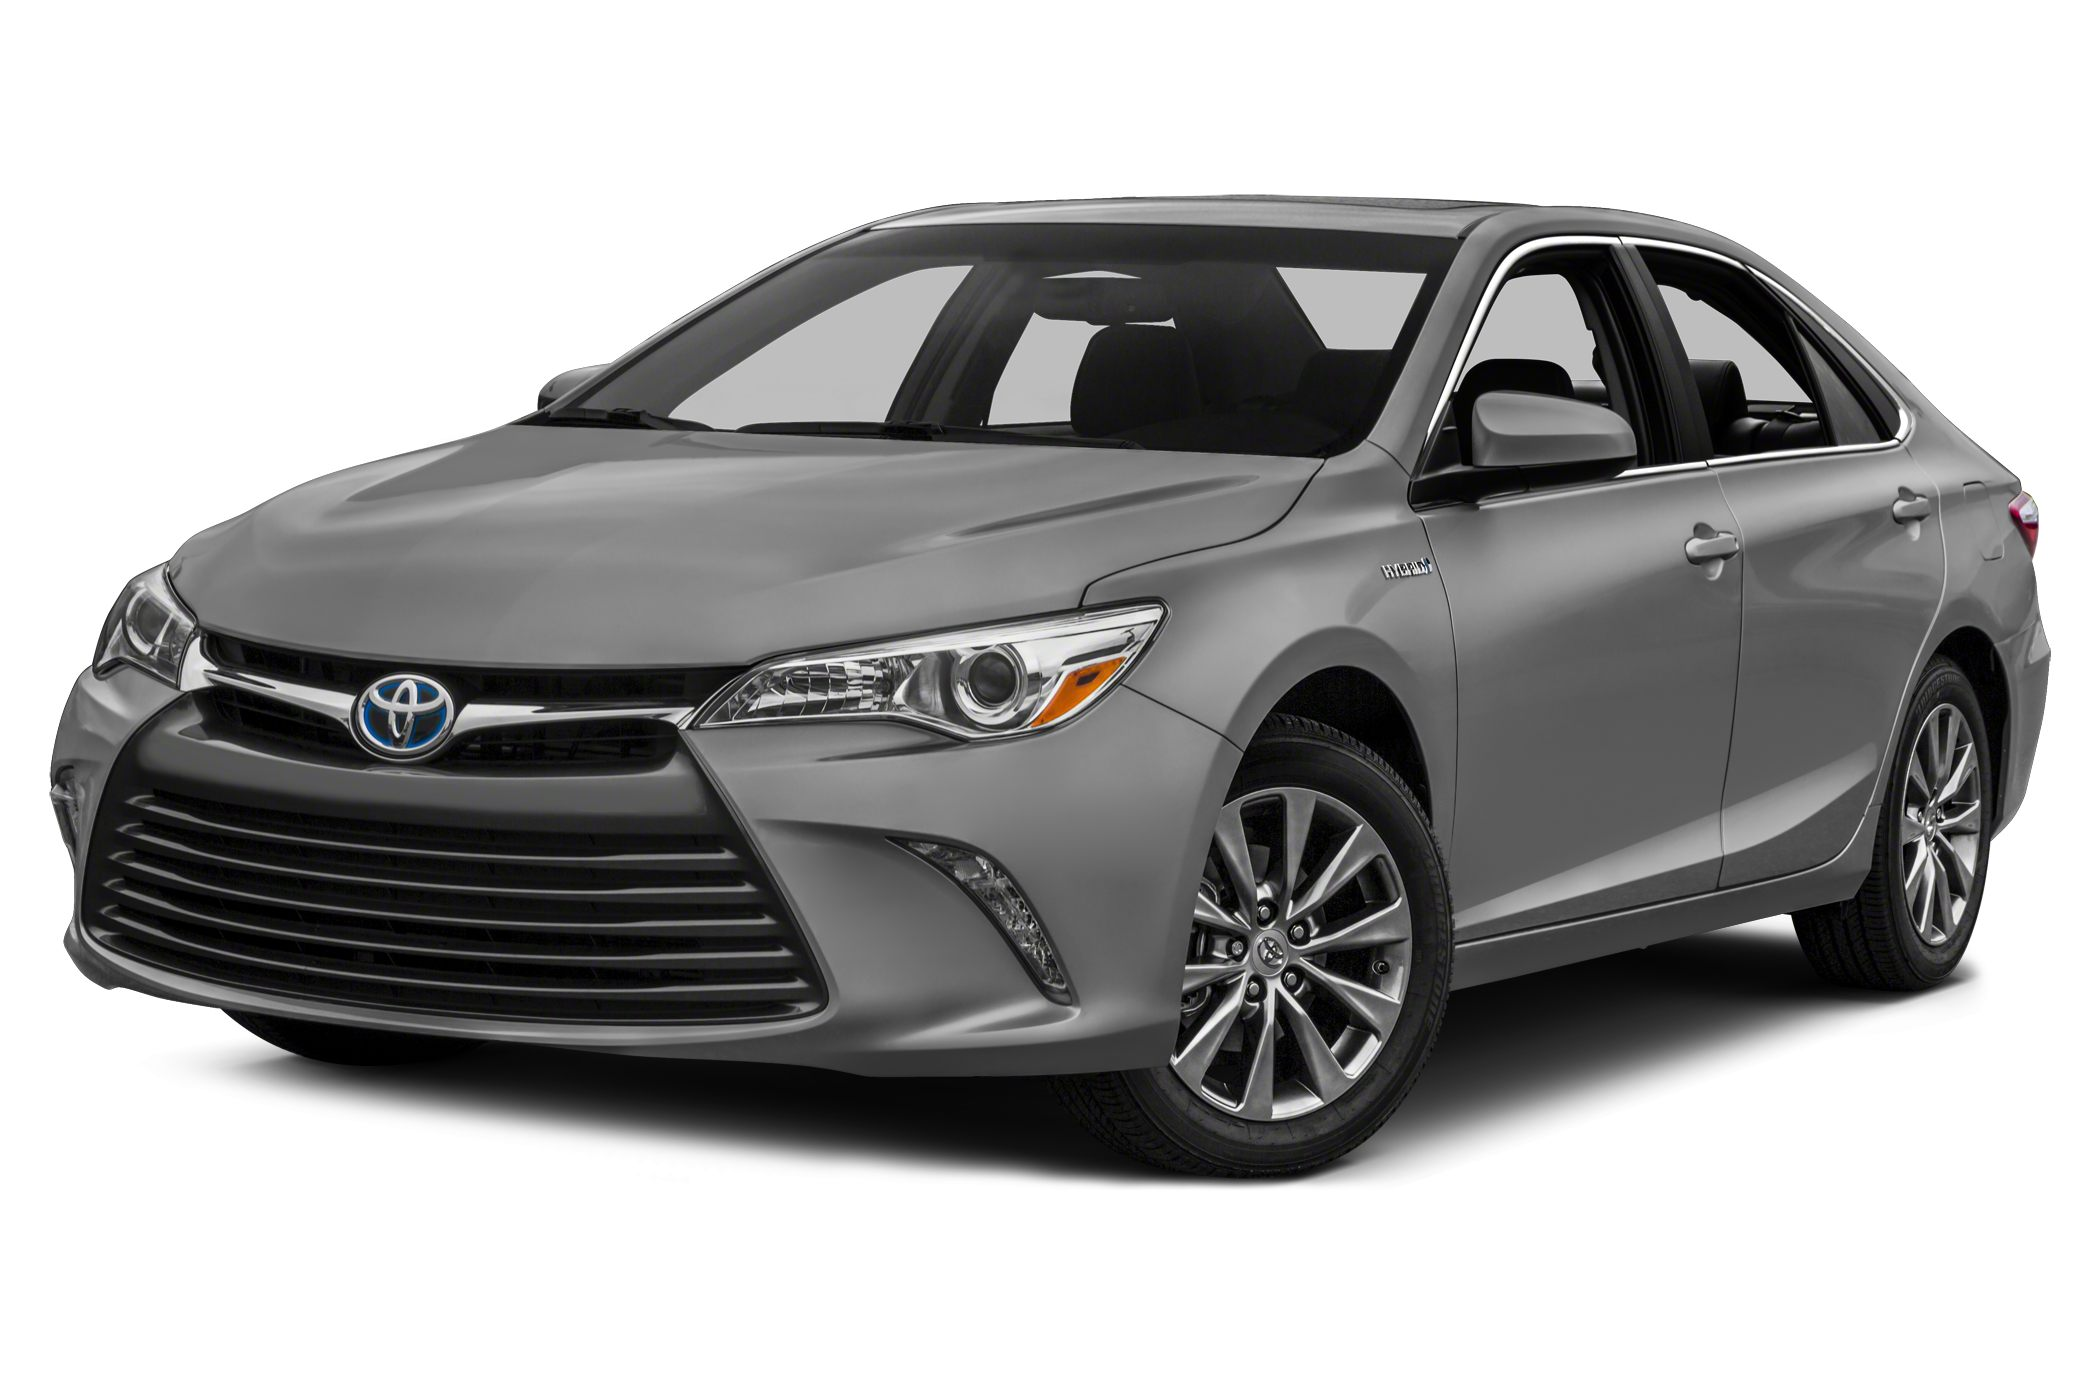 2015 Toyota Camry Hybrid LE Sedan for sale in Bronx for $27,615 with 2 miles.